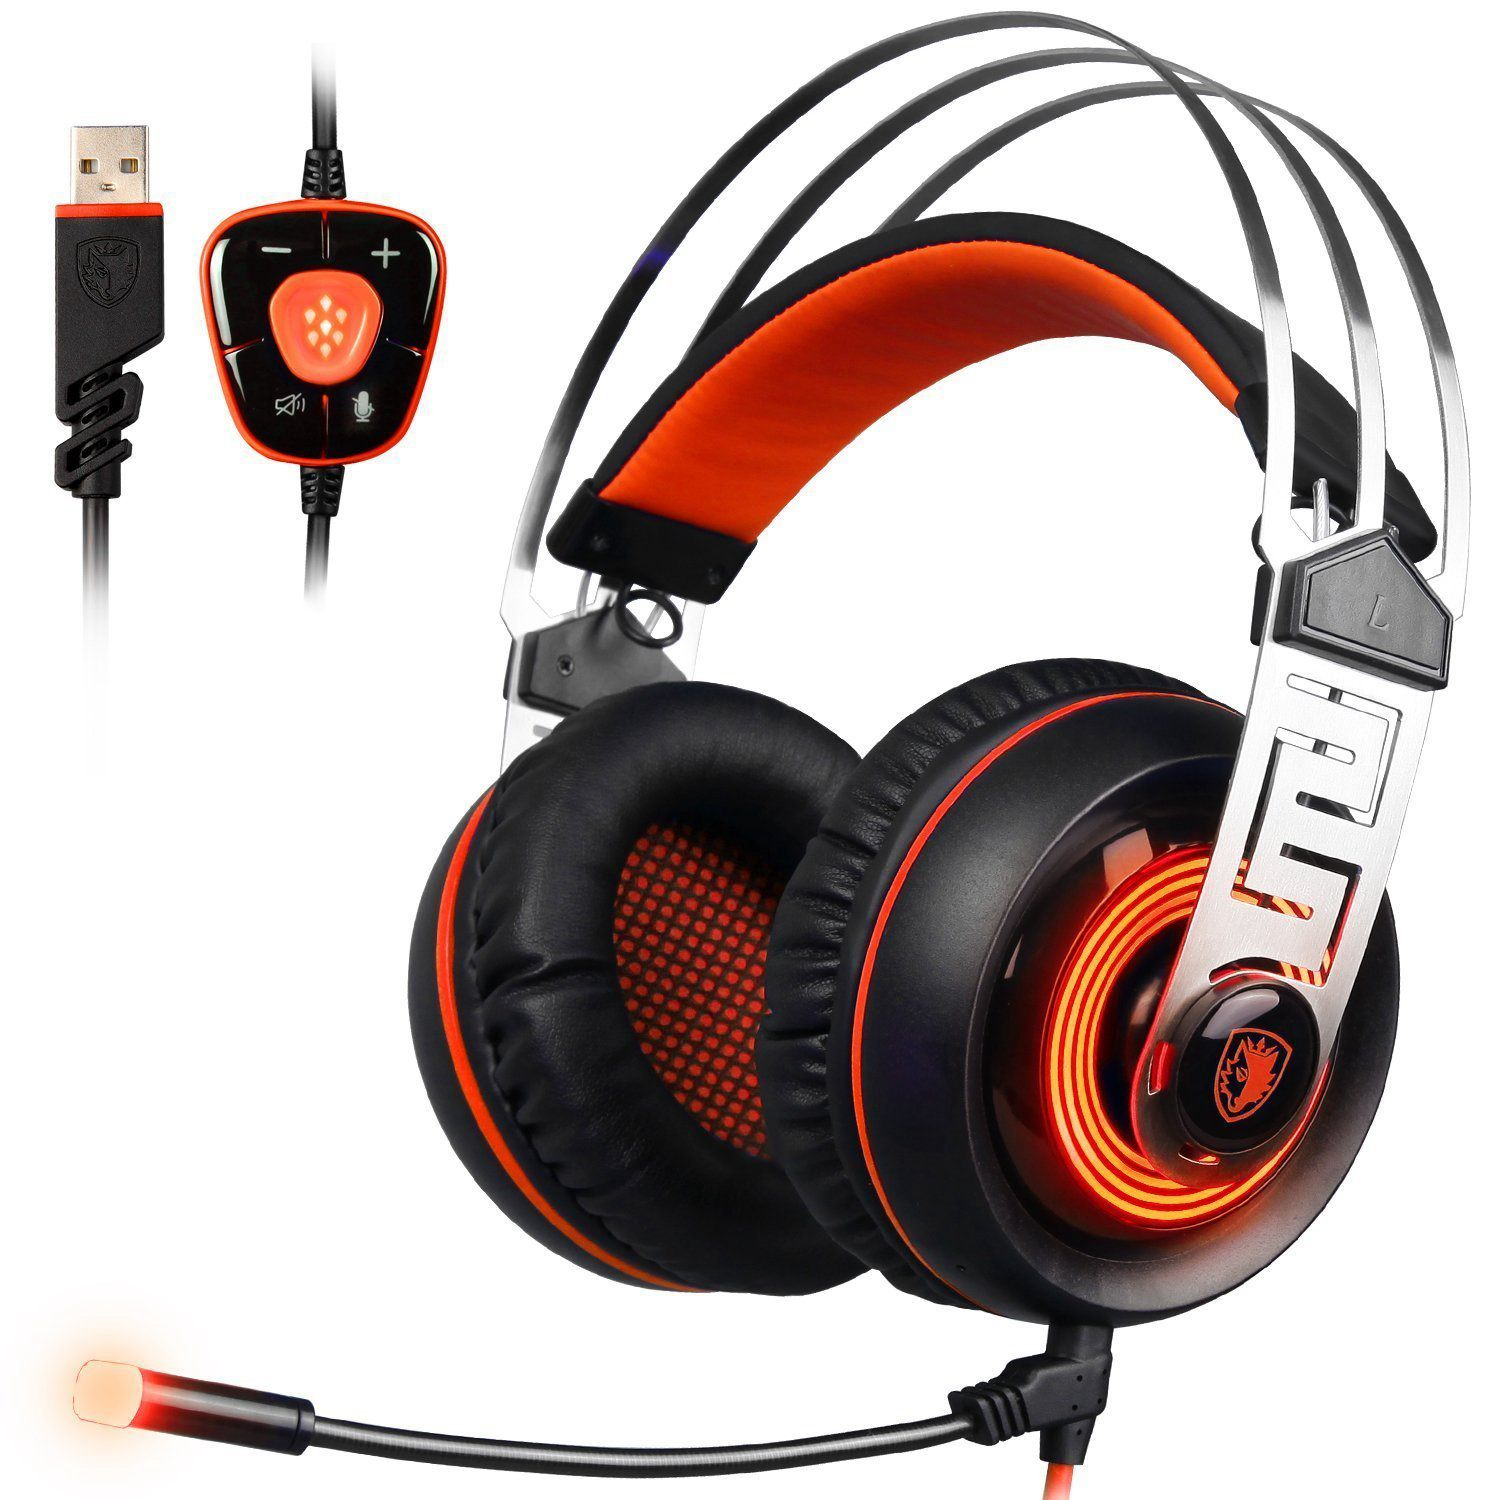 Top Deals SADES A7 USB 7.1 Gaming Headphones Game Earphone With Mic LED for Computer Laptop PC Gamer Stereo Headset each g1100 shake e sports gaming mic led light headset headphone casque with 7 1 heavy bass surround sound for pc gamer